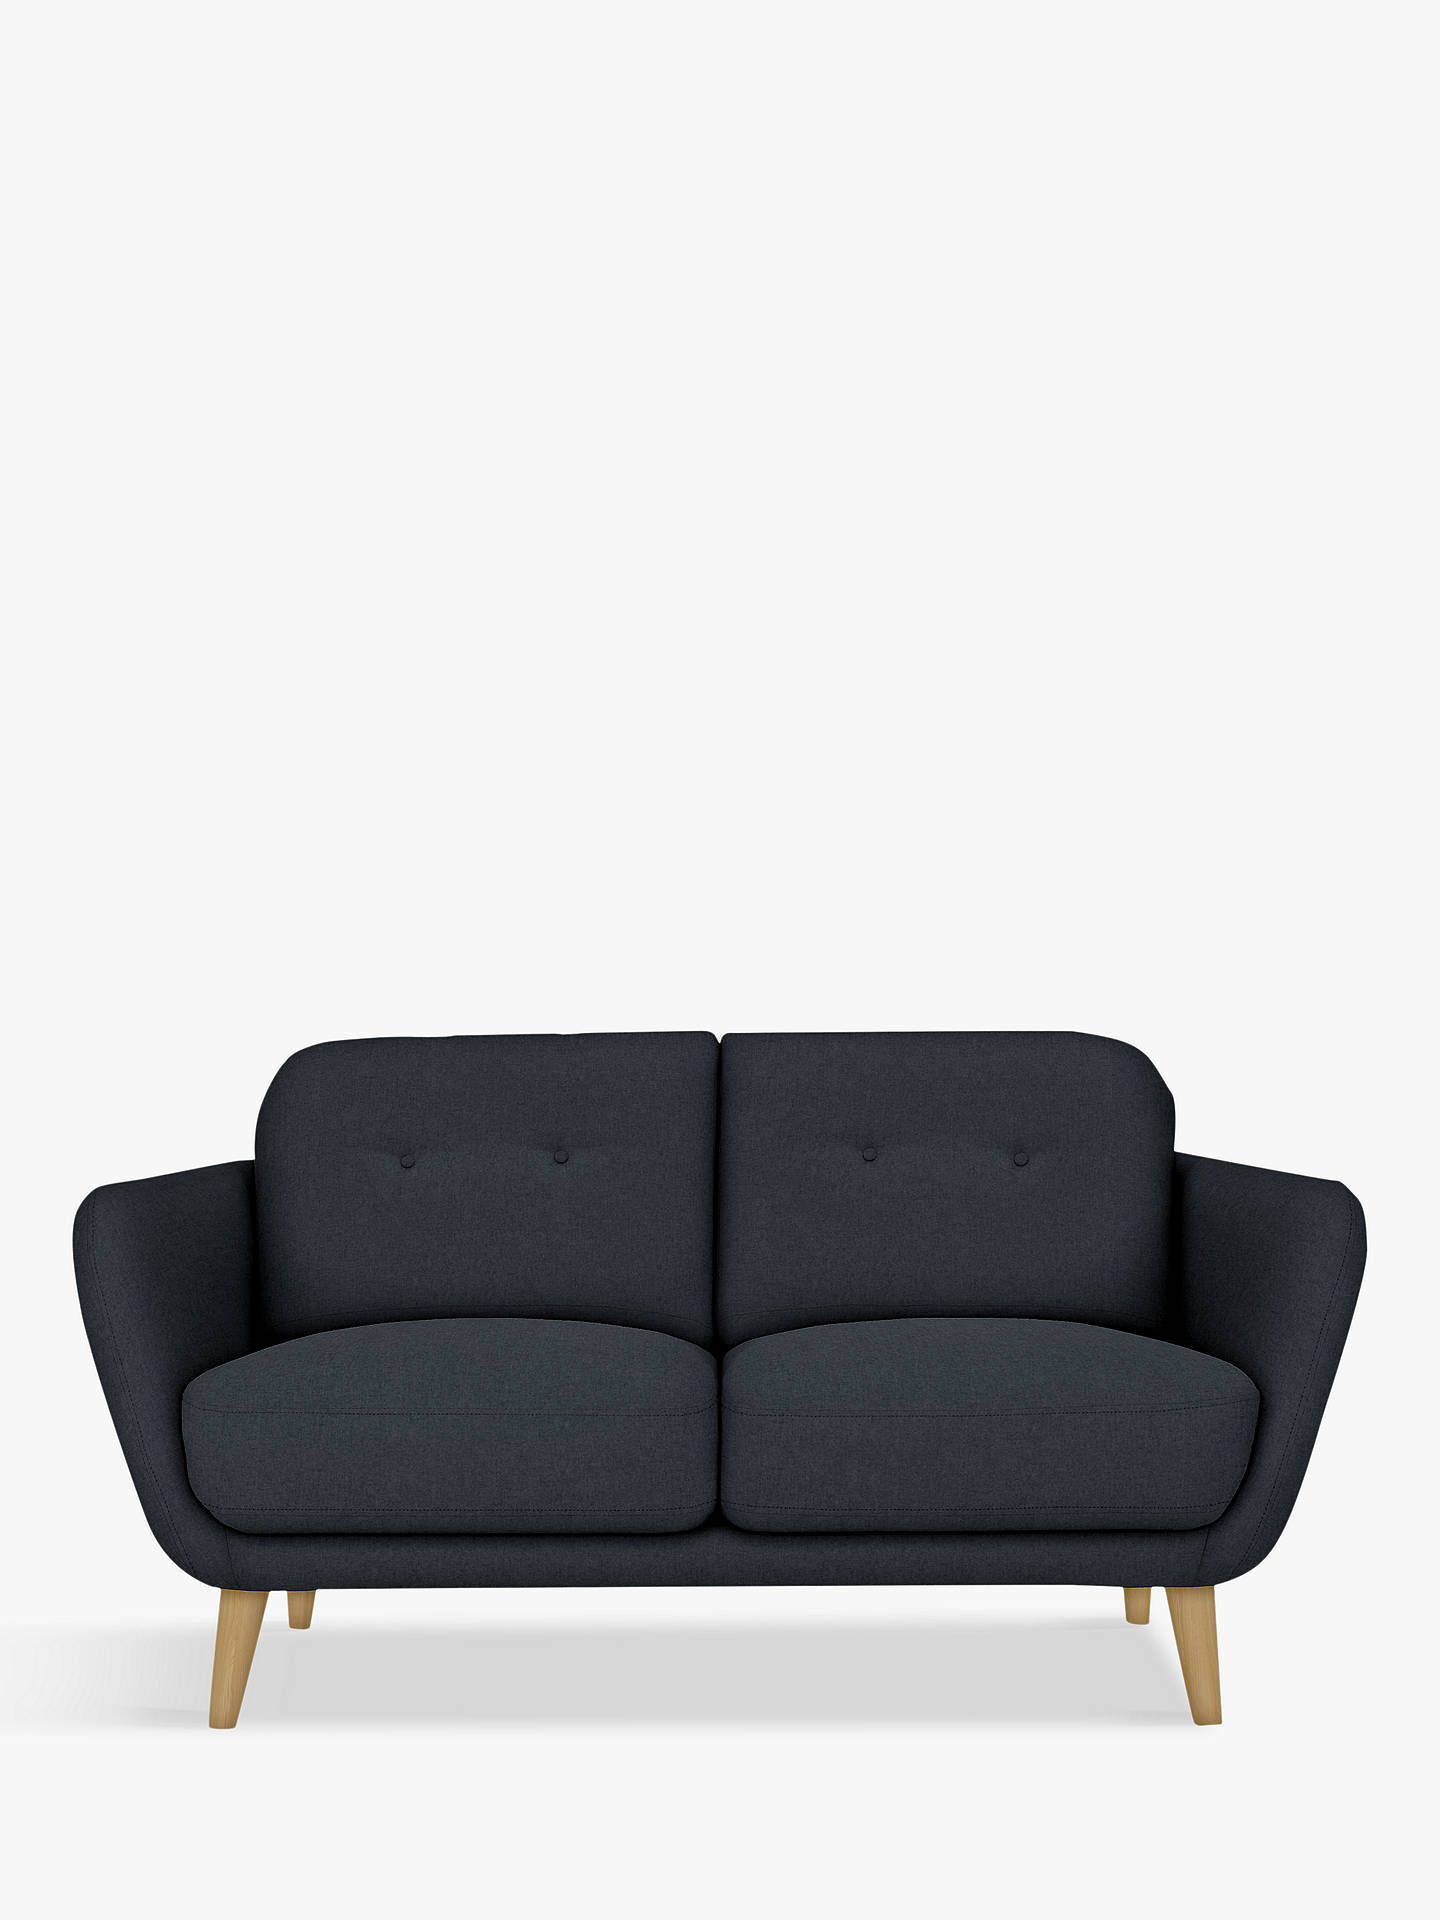 House by John Lewis Arlo Small 2 Seater Sofa at John Lewis & Partners